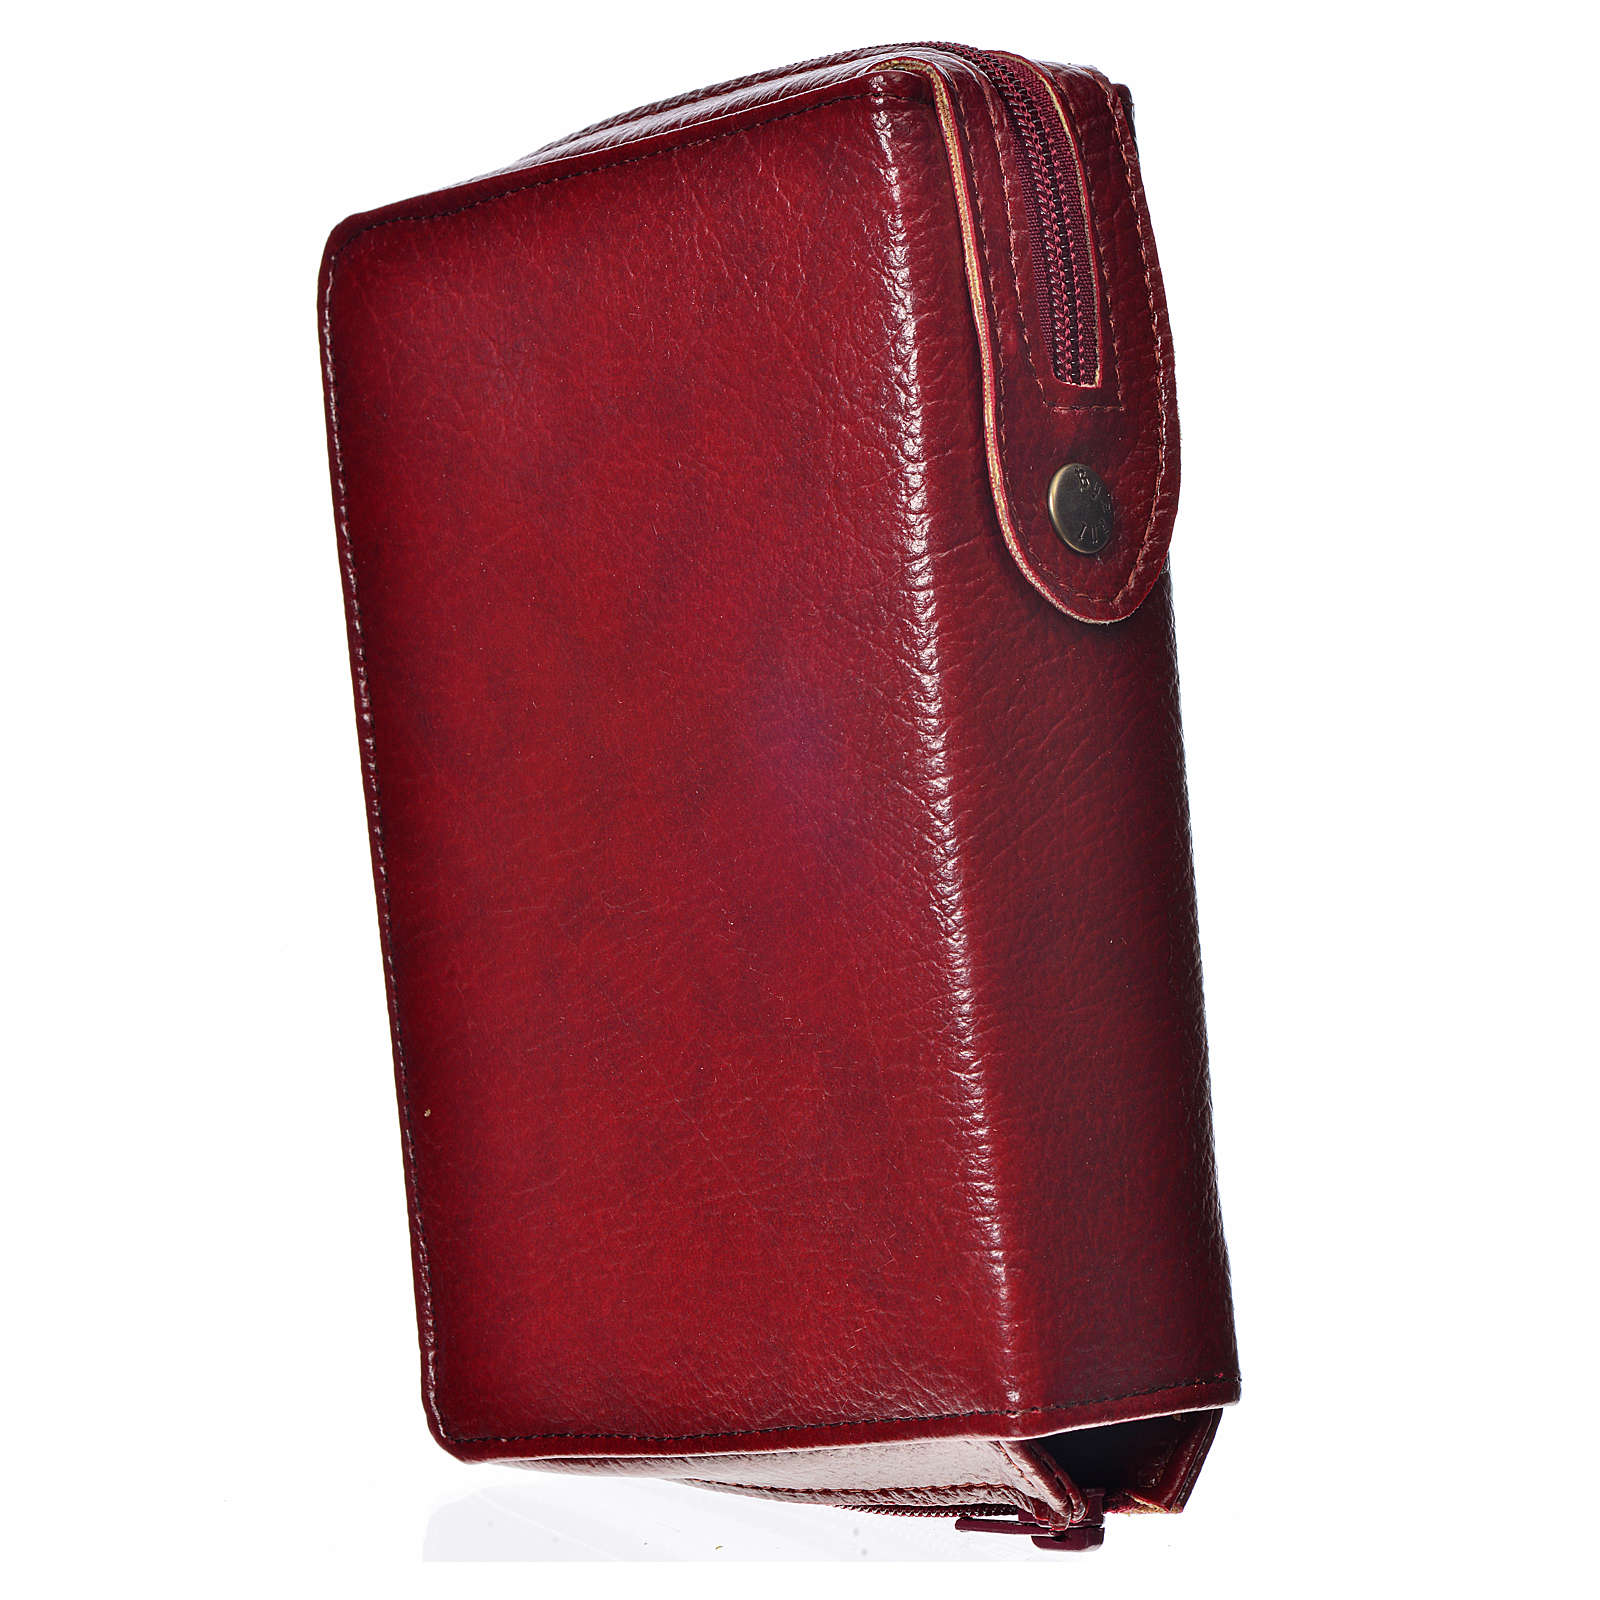 Hardcover for the New Jerusalem Bible, burgundy bonded leather 4